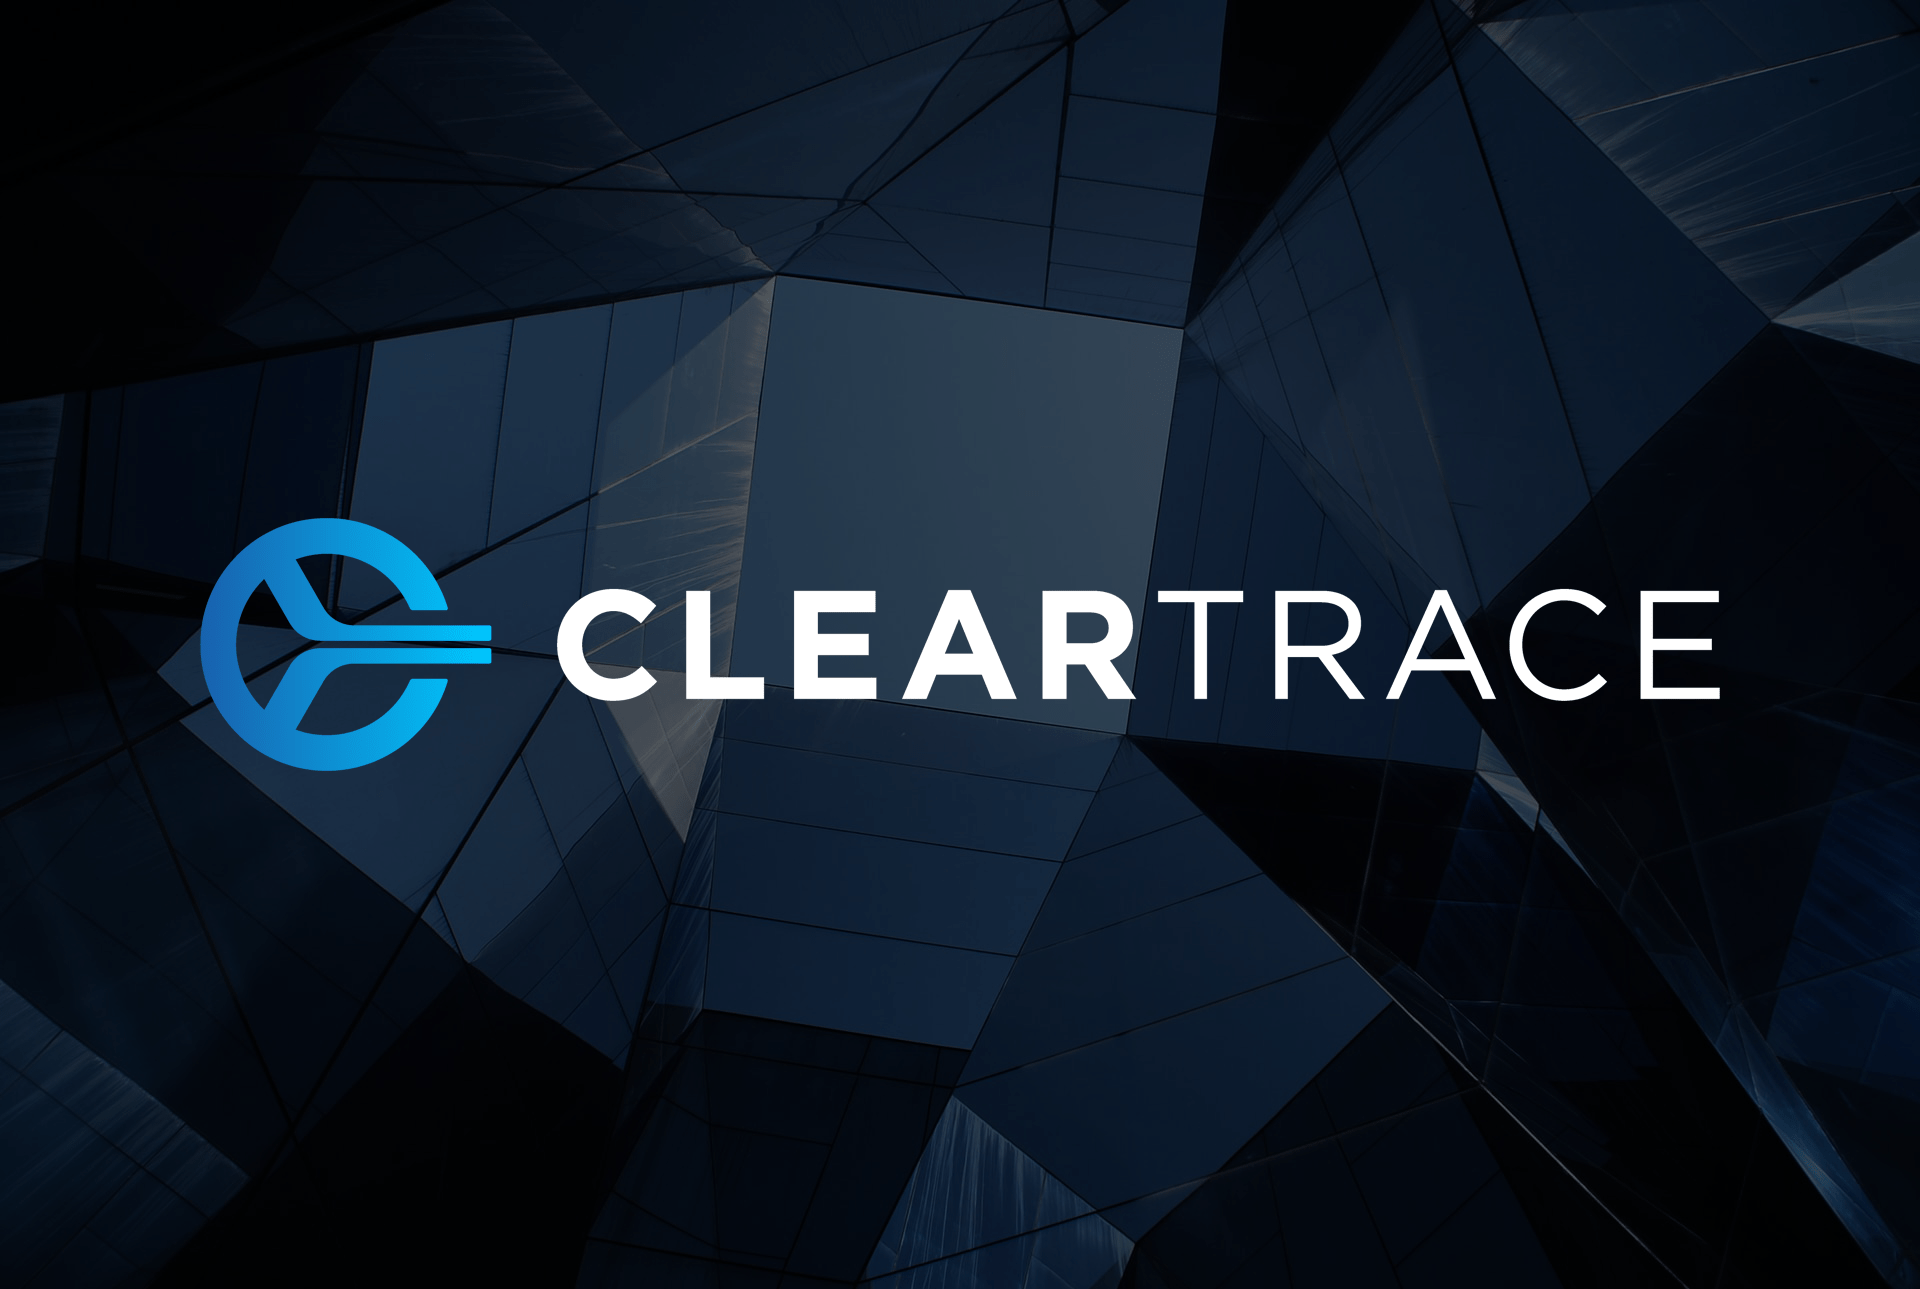 ClearTrace auditable climate accounting software